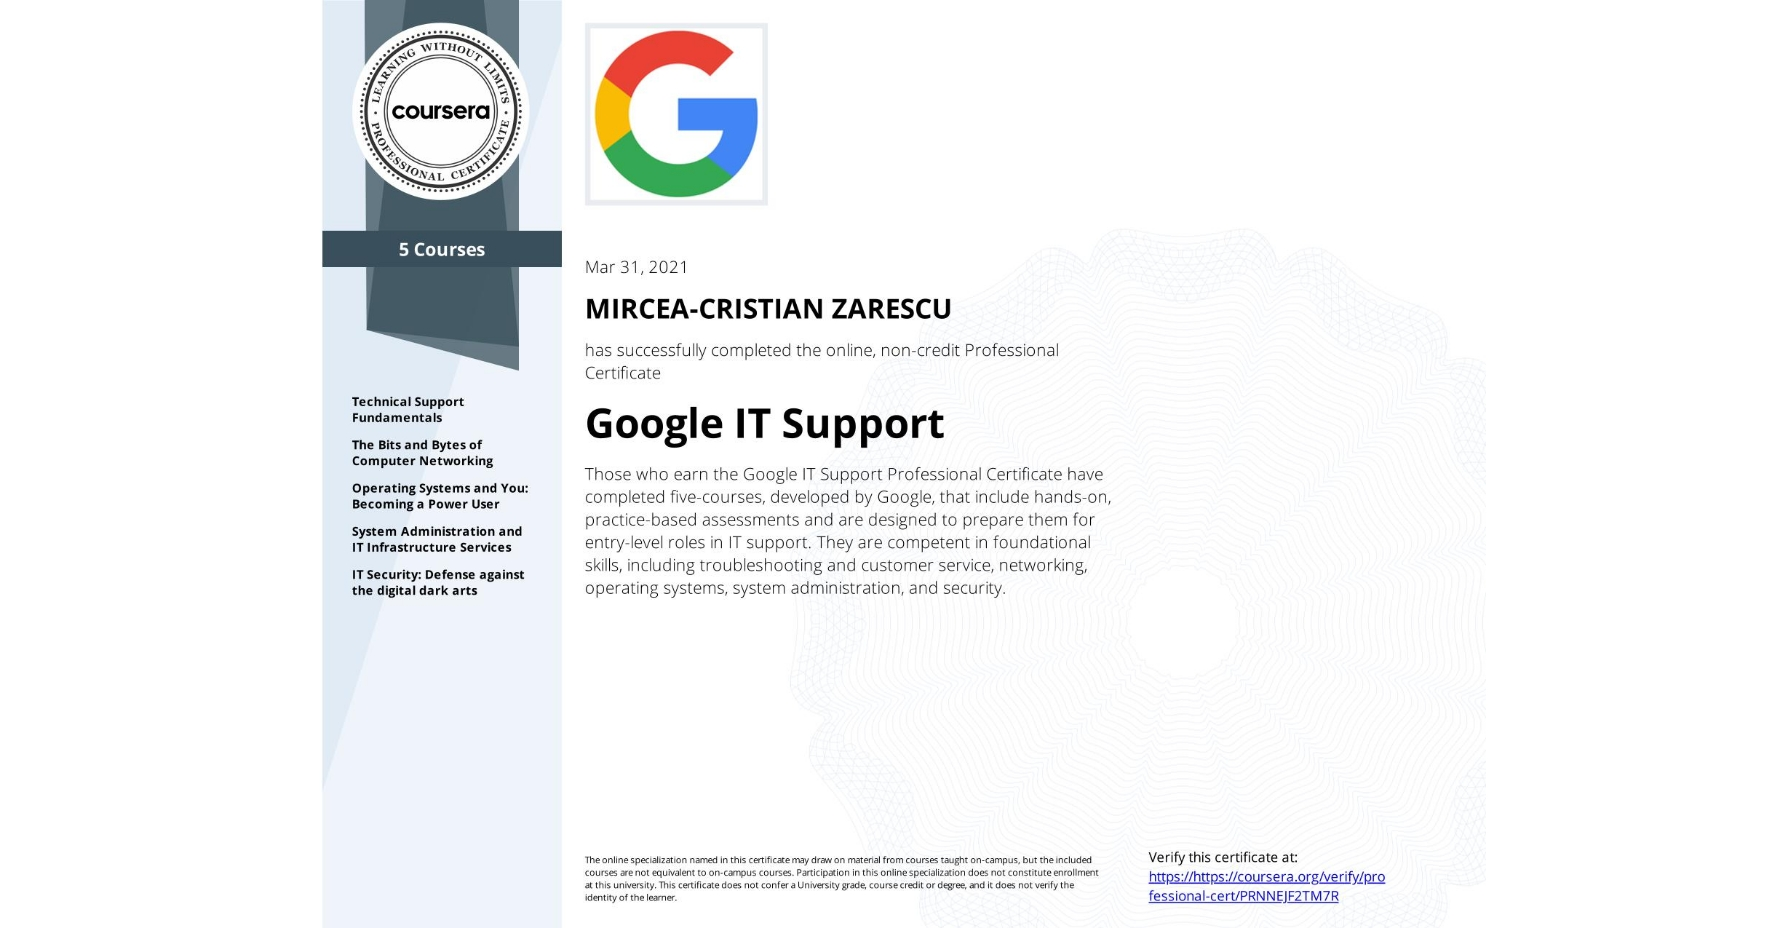 View certificate for MIRCEA-CRISTIAN ZARESCU, Google IT Support, offered through Coursera. Those who earn the Google IT Support Professional Certificate have completed five-courses, developed by Google, that include hands-on, practice-based assessments and are designed to prepare them for entry-level roles in IT support. They are competent in foundational skills, including troubleshooting and customer service, networking, operating systems, system administration, and security.